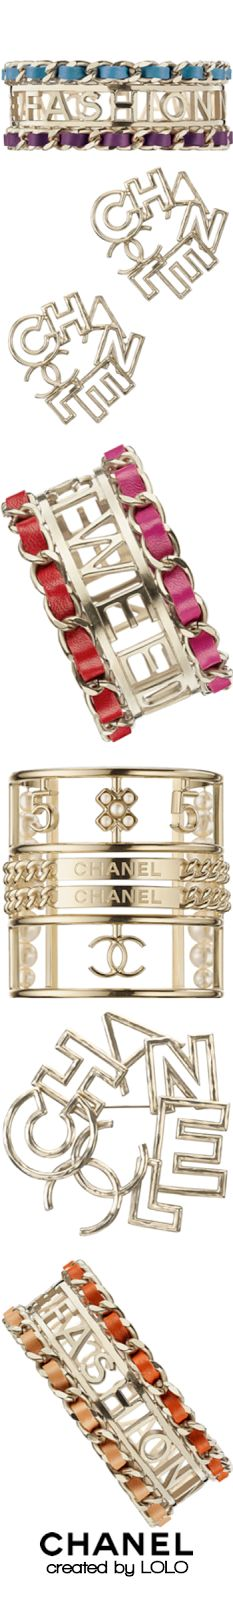 Chanel Spring-Summer 2015 Accessories | LOLO